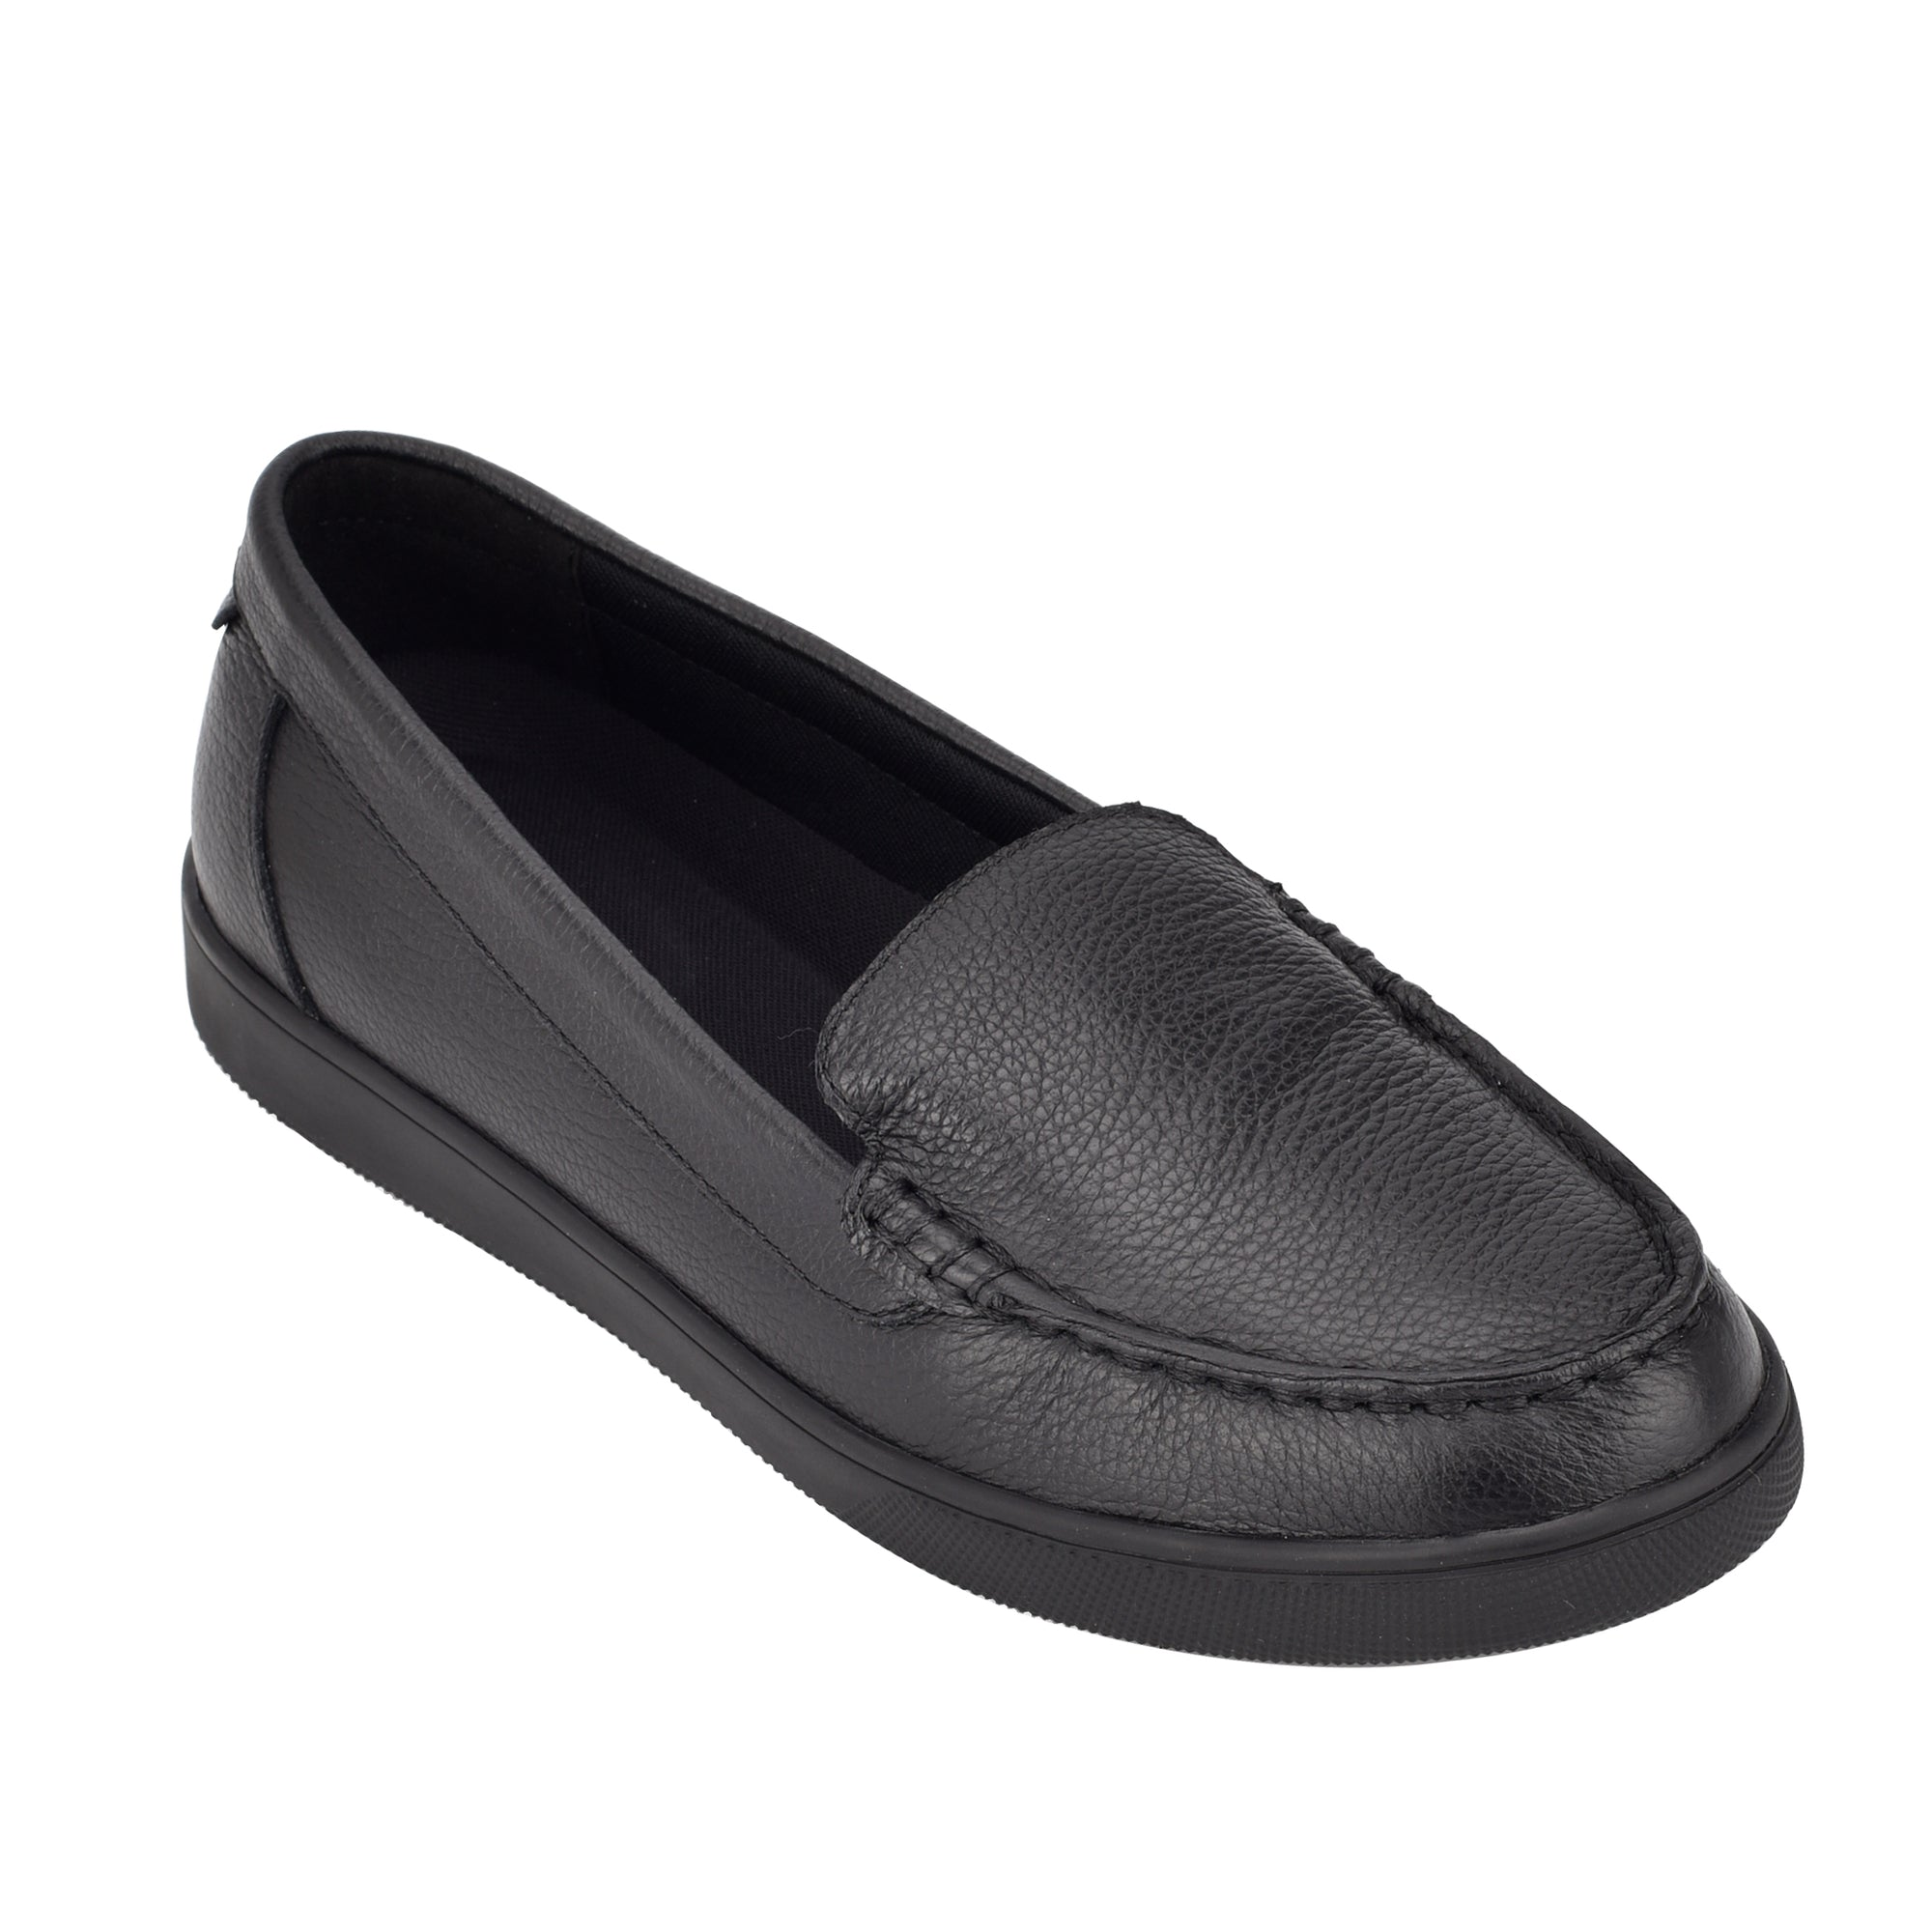 Board Casual Slip On Shoes